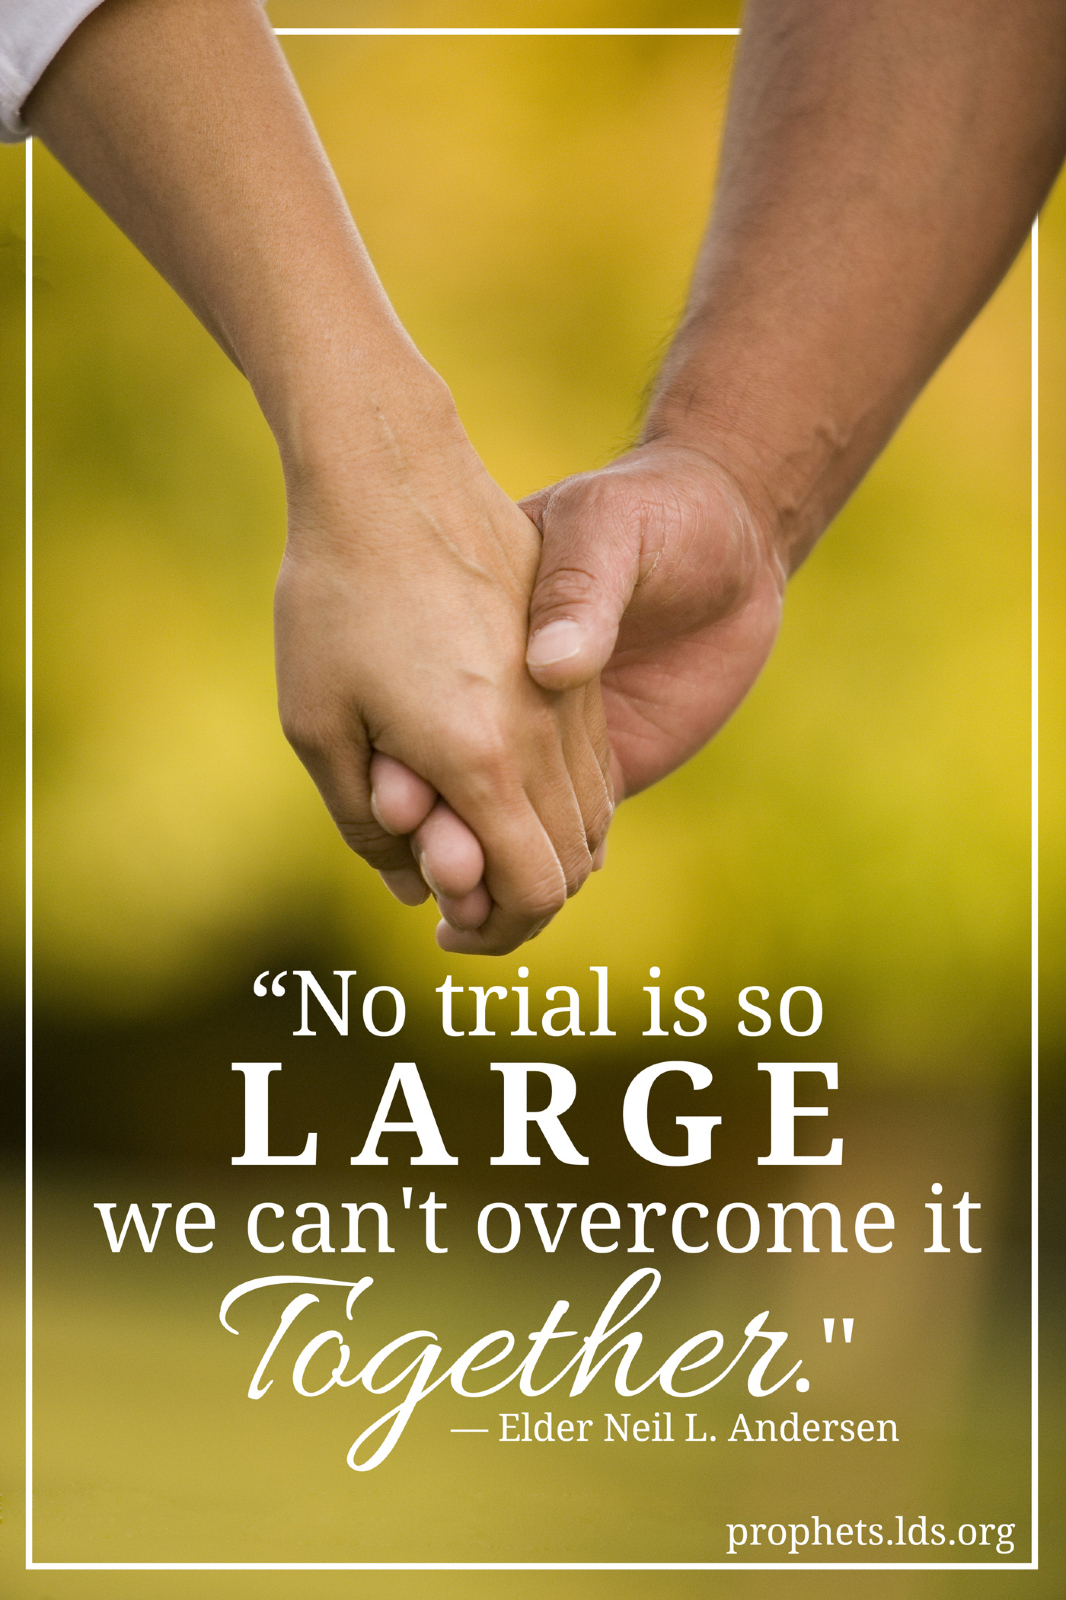 the trials and tribulations of five sisters at marrying age Quotes on overcoming trials when you need quotes on overcoming trials, we have them many people use inspirational quotes to help them beat challenges or obstacles and it may be that you also have a friend who could use a little encouragement.